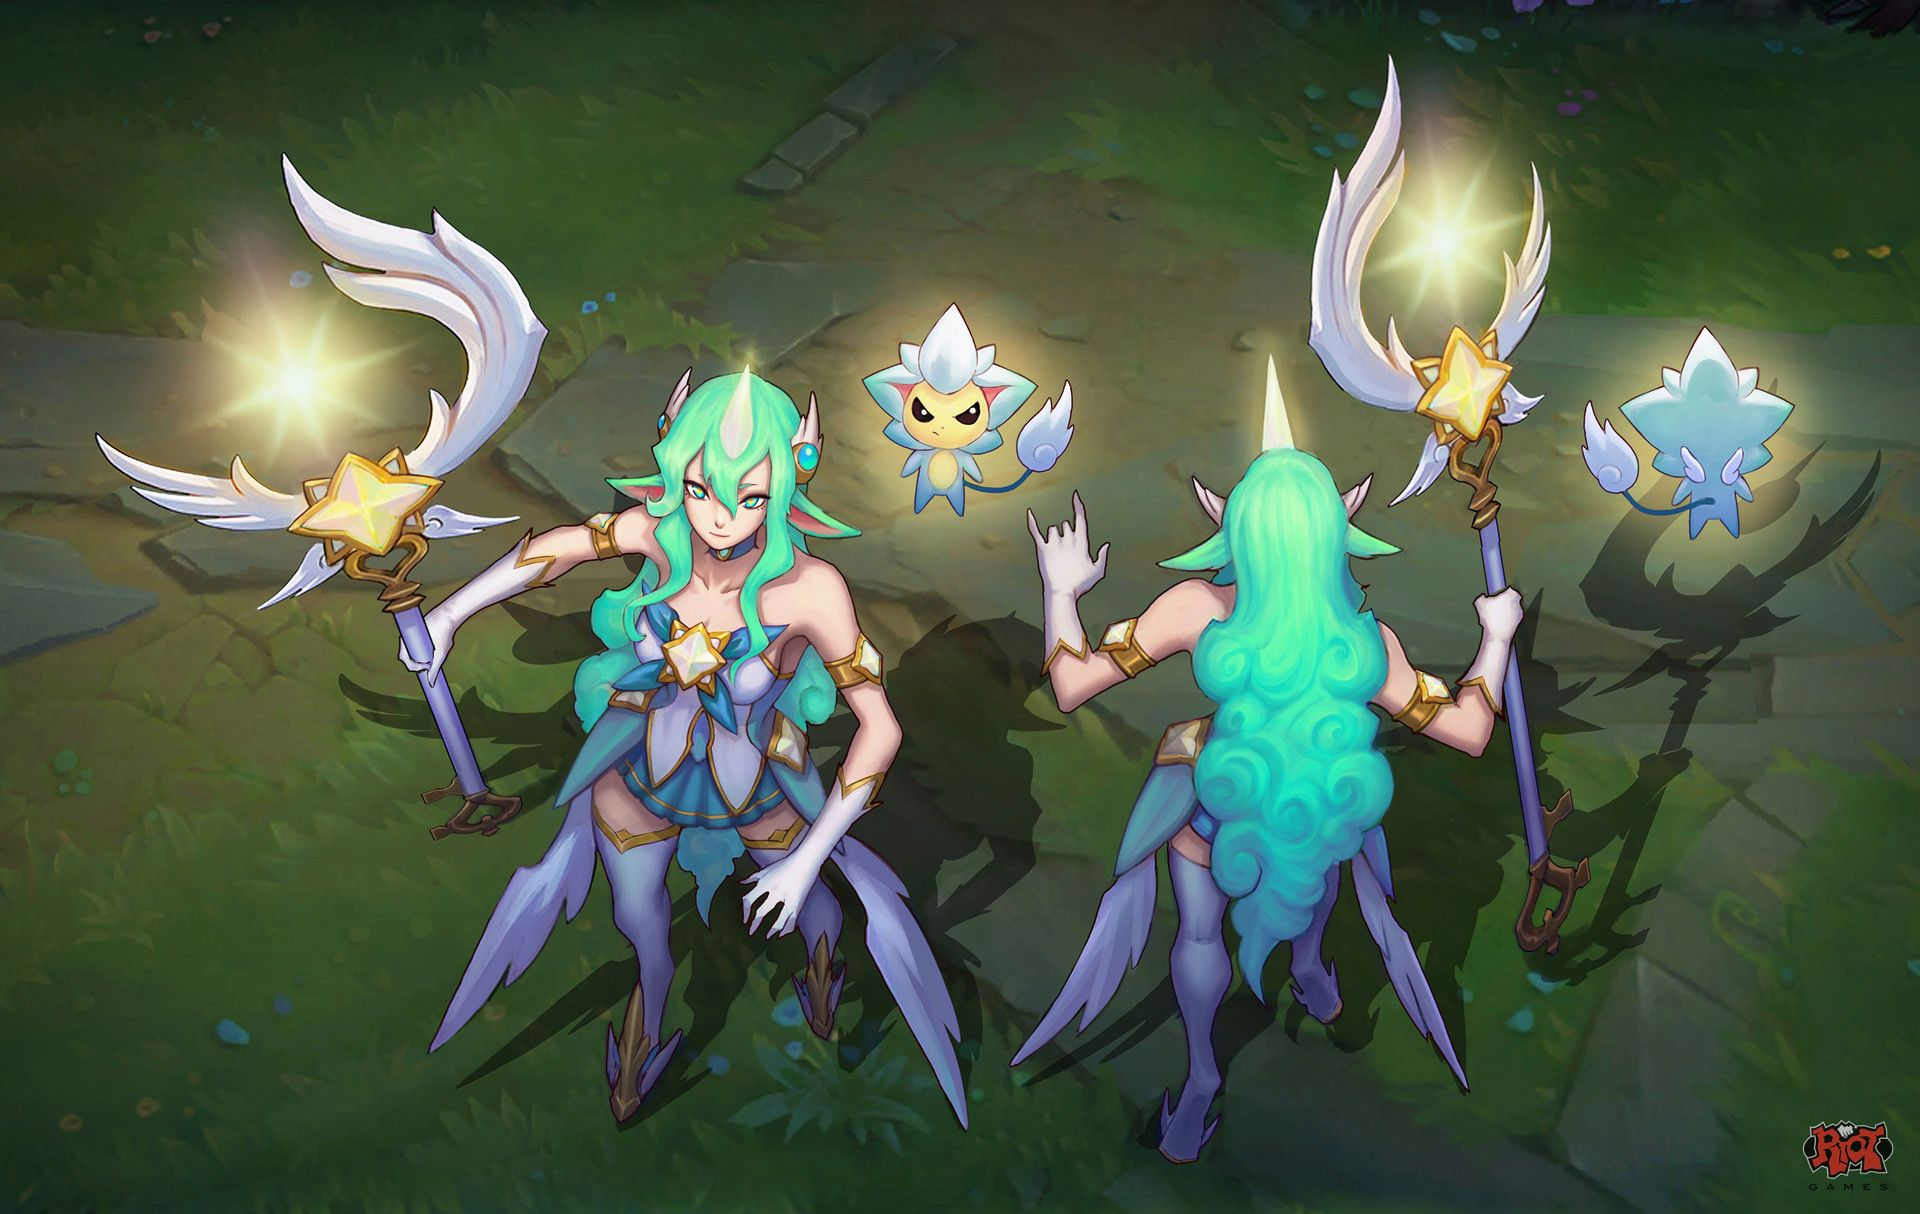 Pin By Deedee On League Of Legends League Of Legends Characters League Of Legends Lol League Of Legends